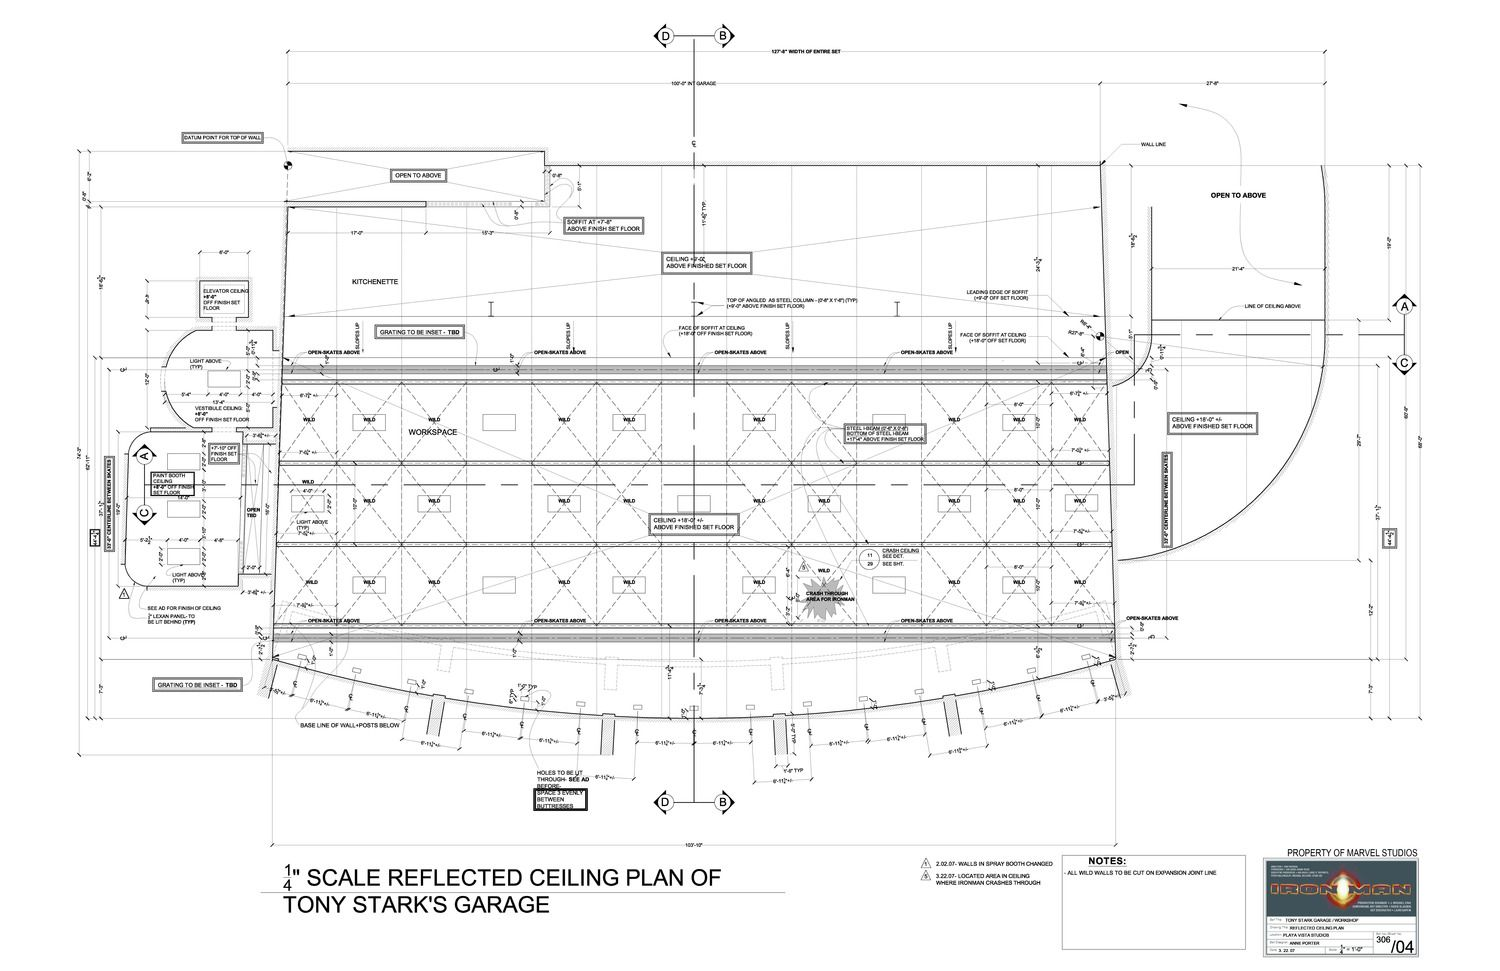 Pin By Clarence Remy On Tony Stark Workshop Tony Stark House How To Plan Workshop Plans